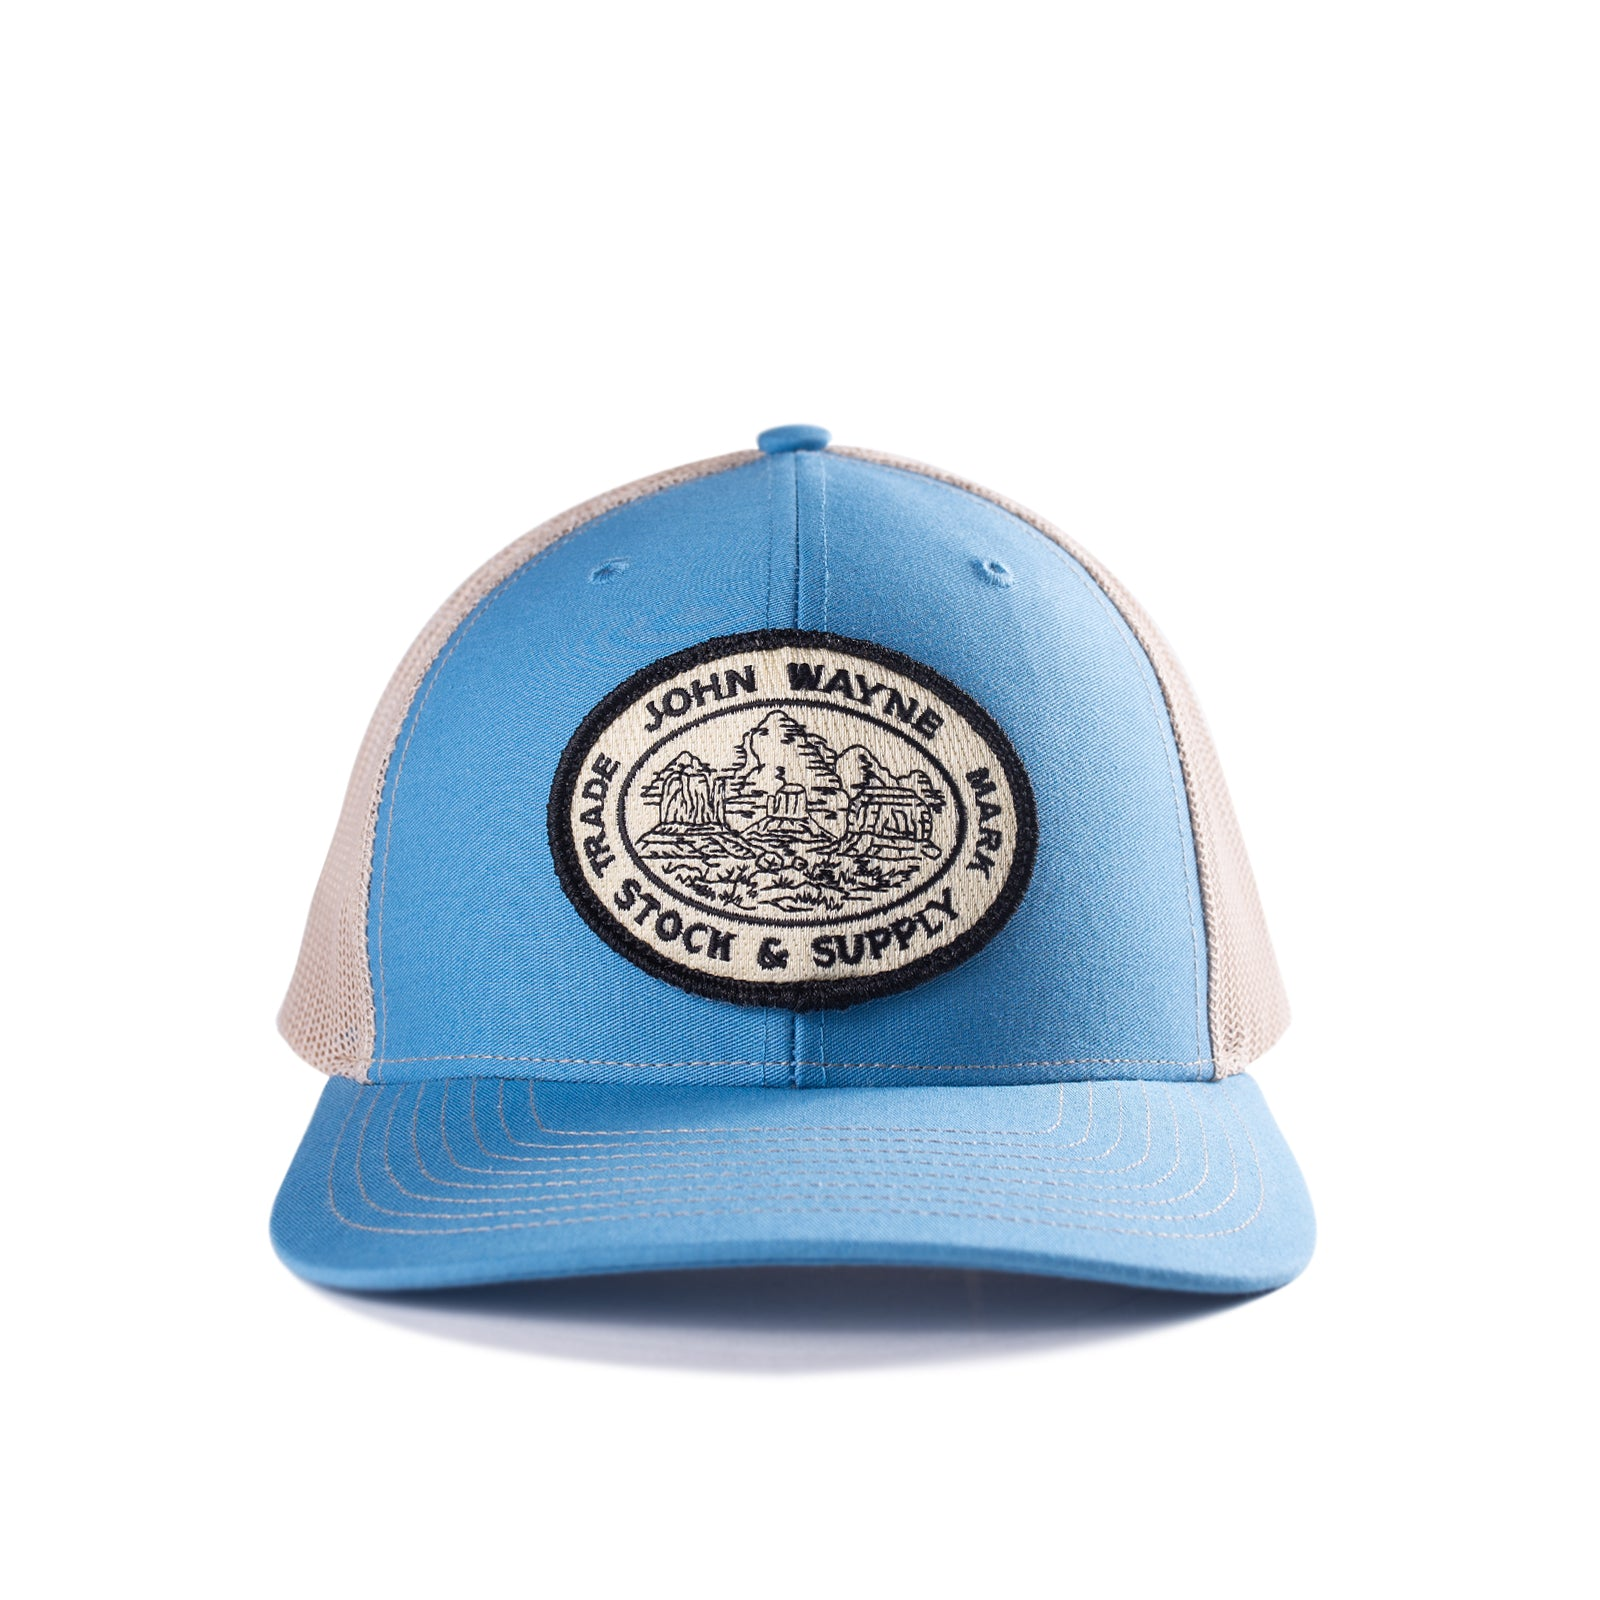 Stock & Supply Hat- Light Blue